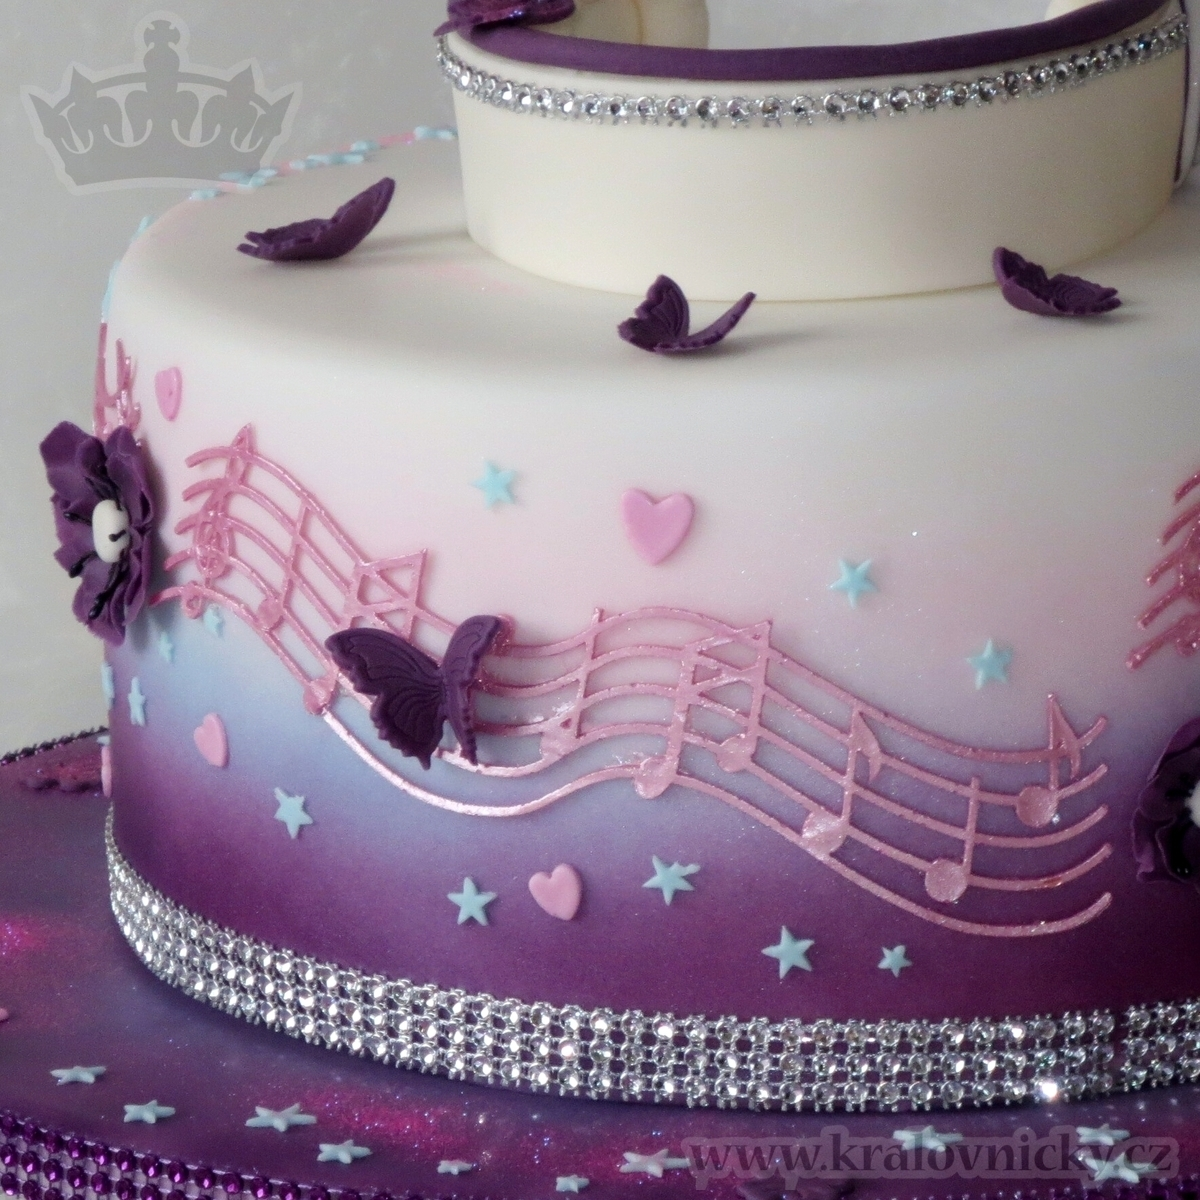 Birthday Cake For Young Girl Who Loves Violetta Serie Fondant Covered Colored By Airbrush And Decorated